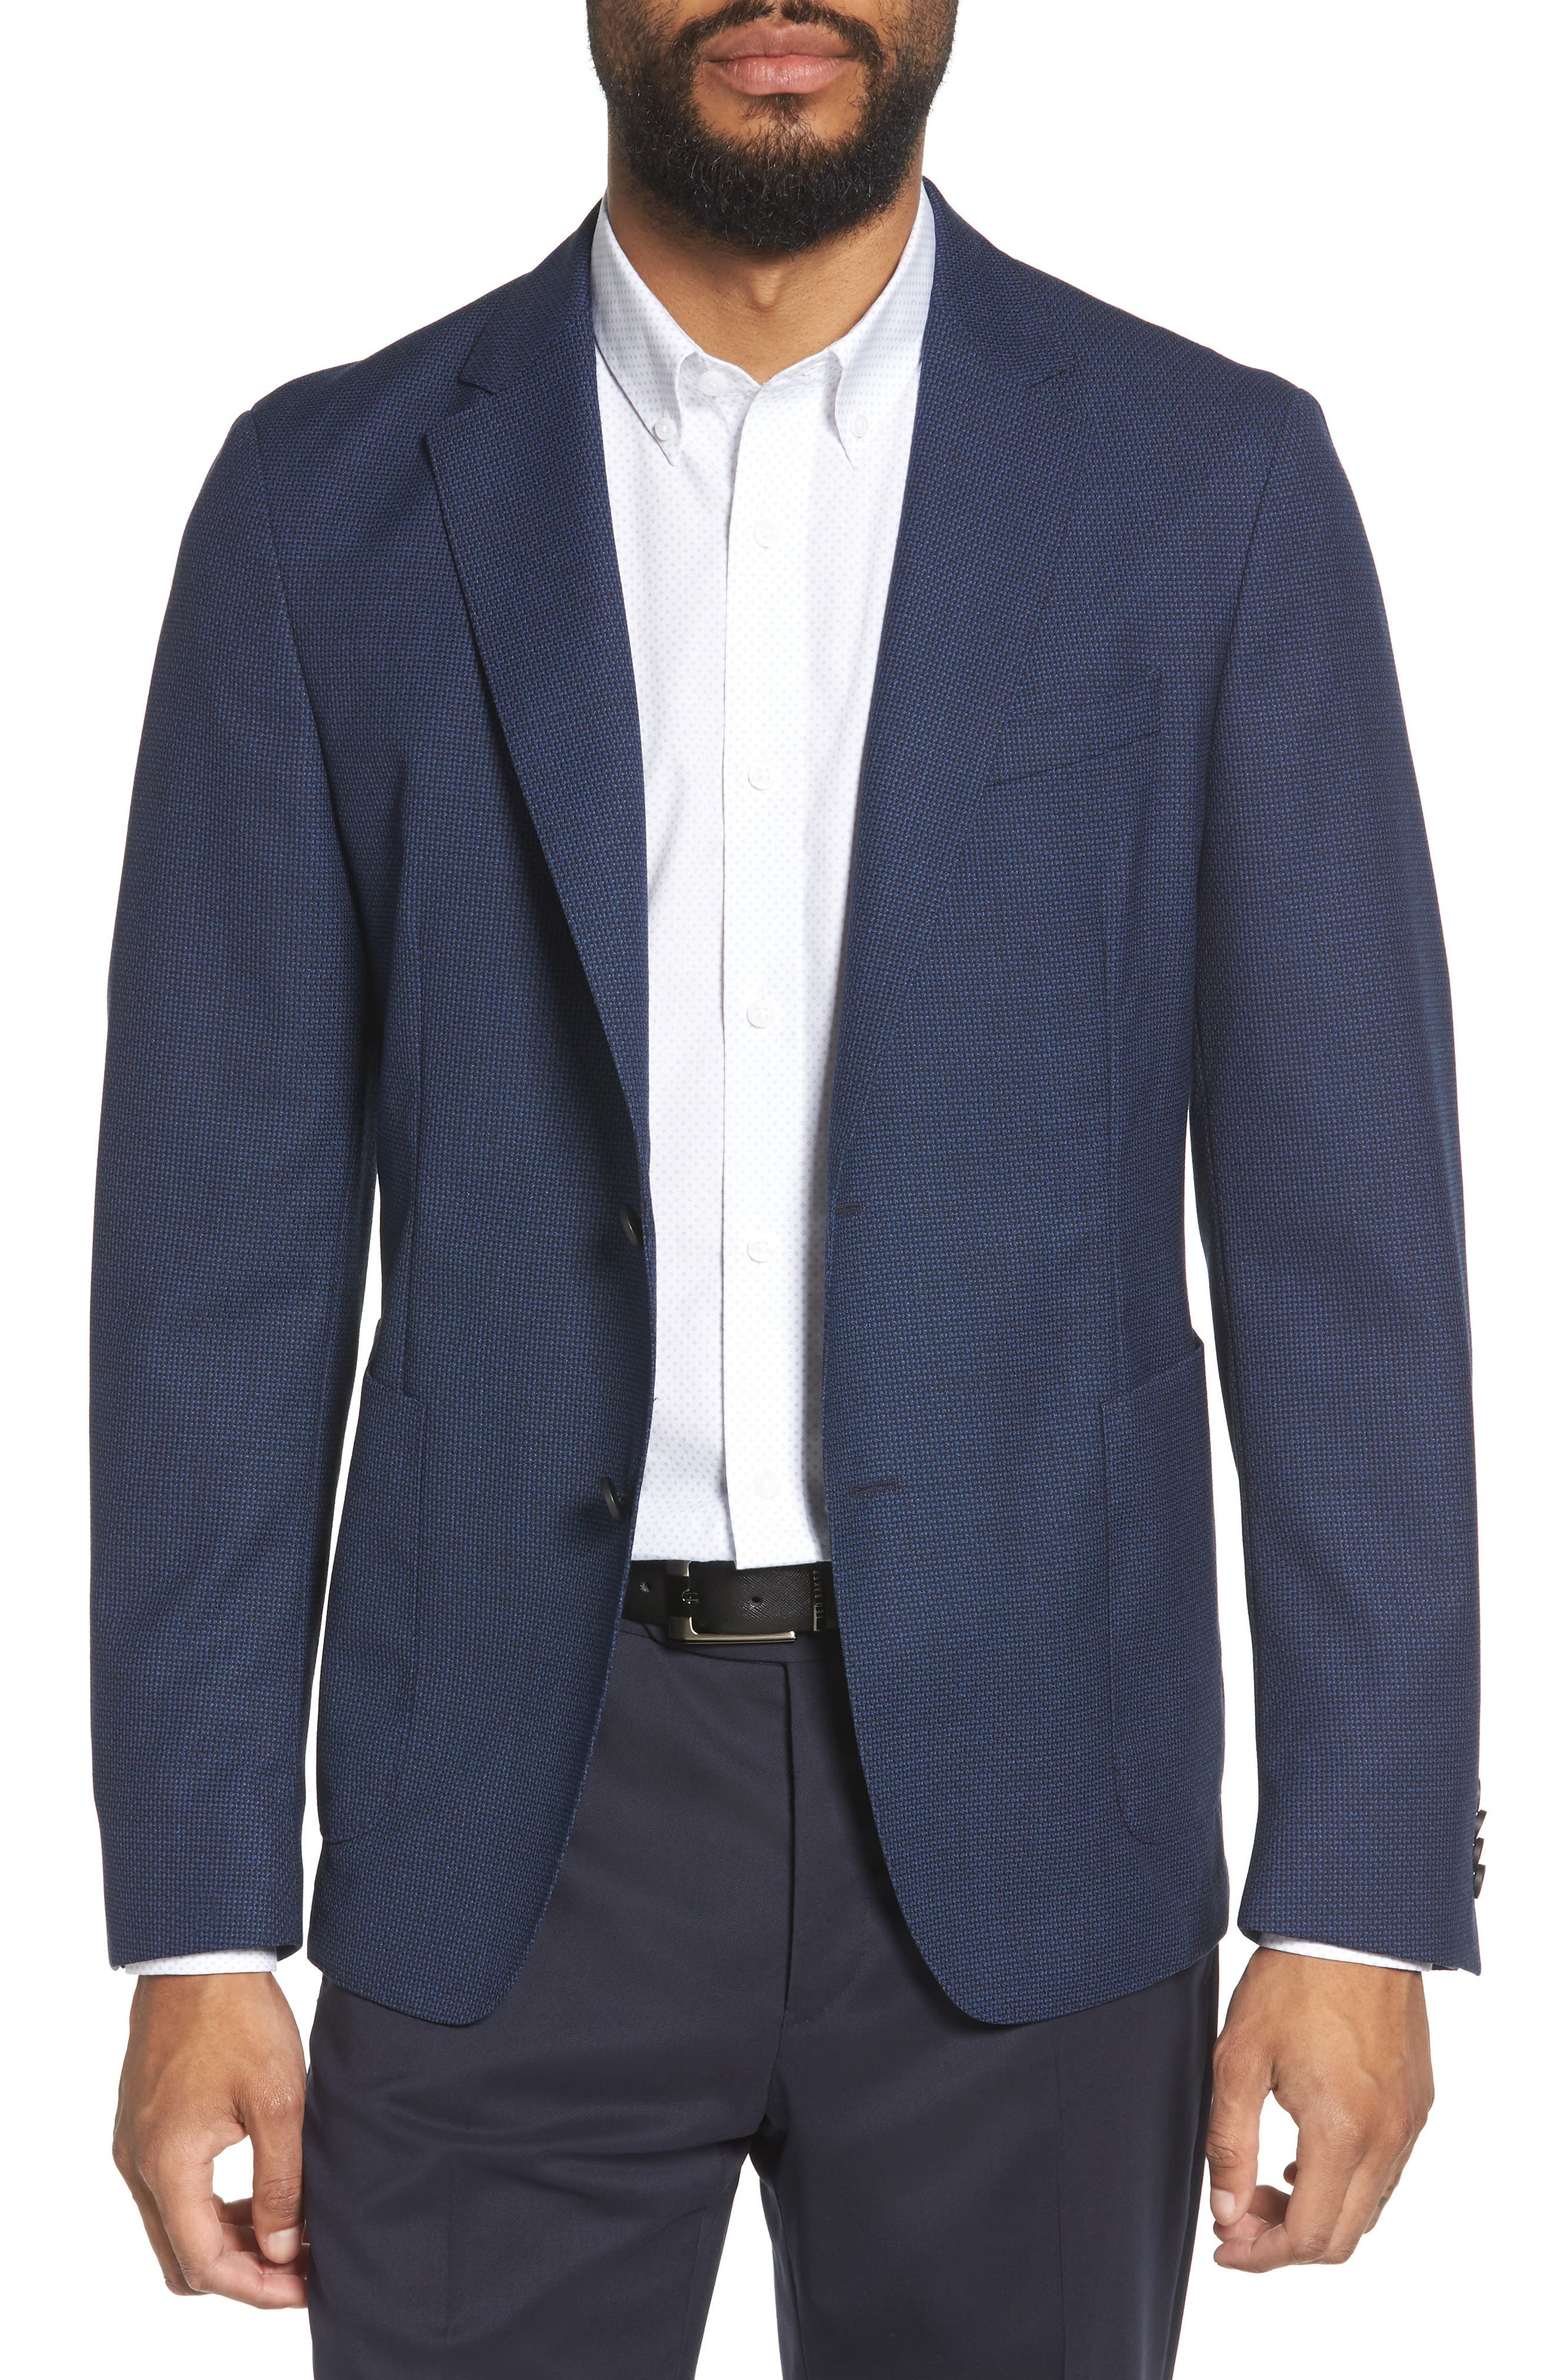 Nold Trim Fit Wool Blazer,                         Main,                         color, BLUE